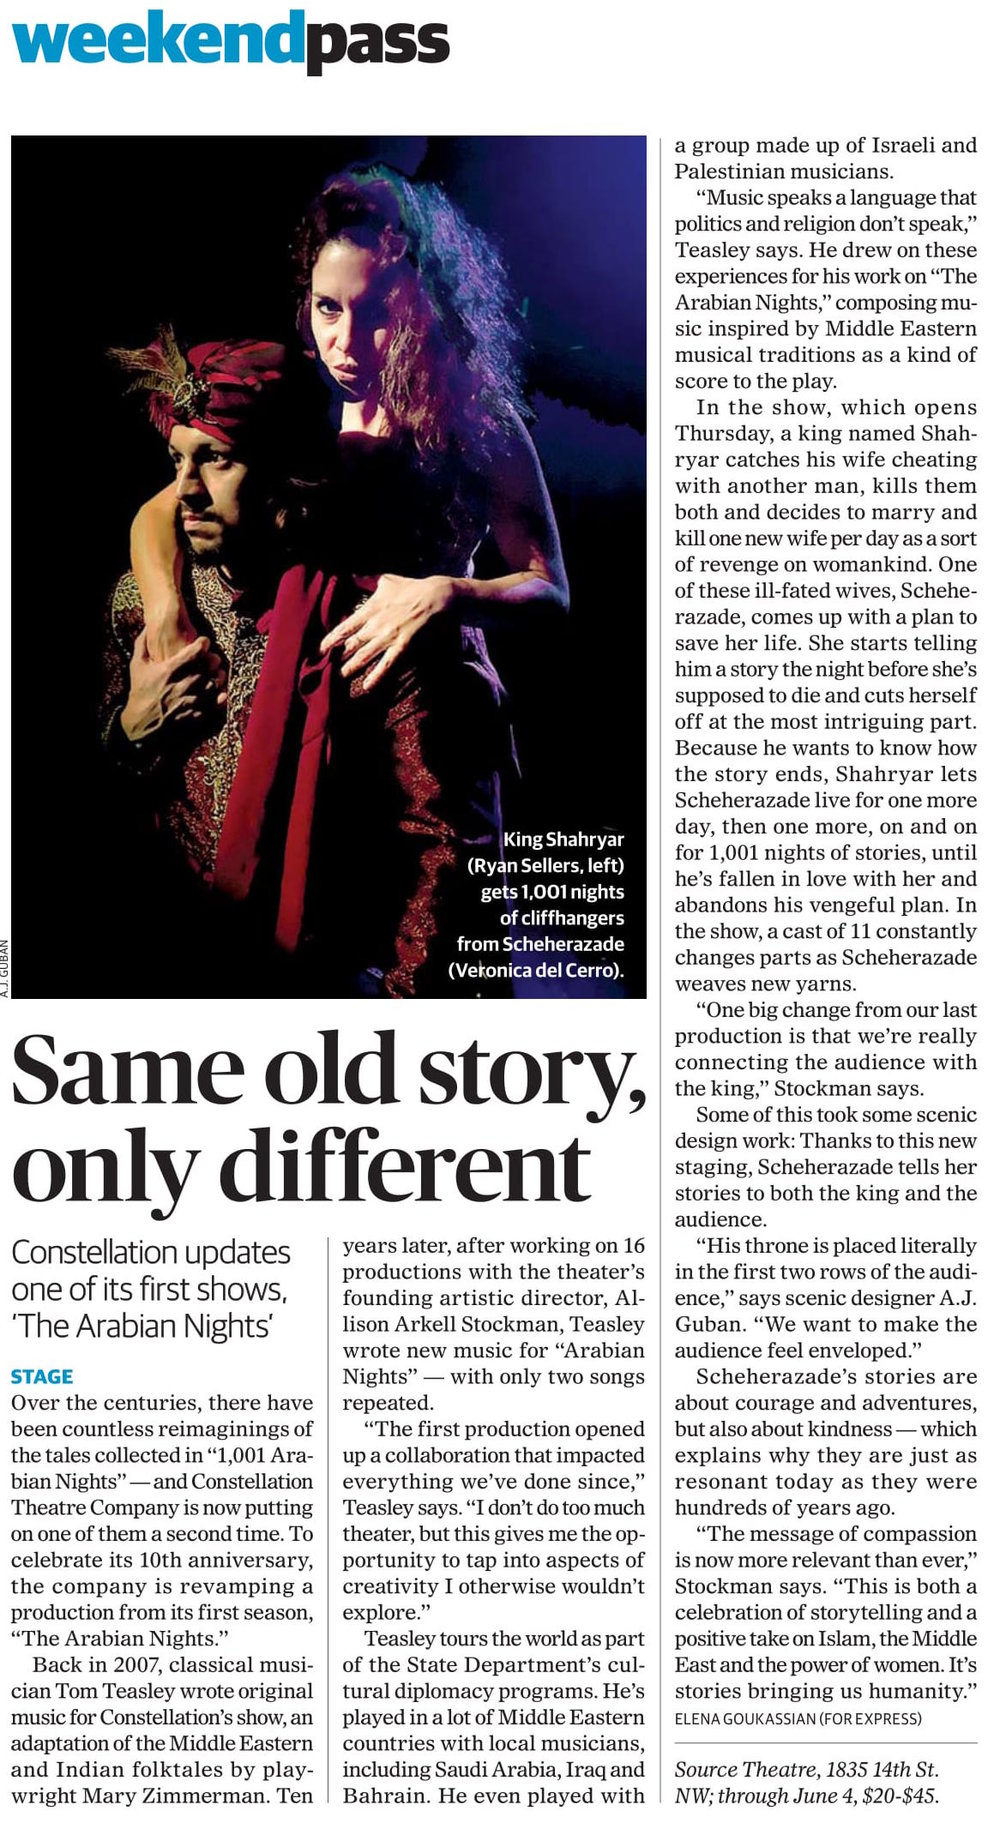 https://www.washingtonpost.com/express/wp/2017/05/03/the-arabian-nights-gets-a-refresh-as-constellation-theatre-company-revisits-one-of-its-very-first-shows